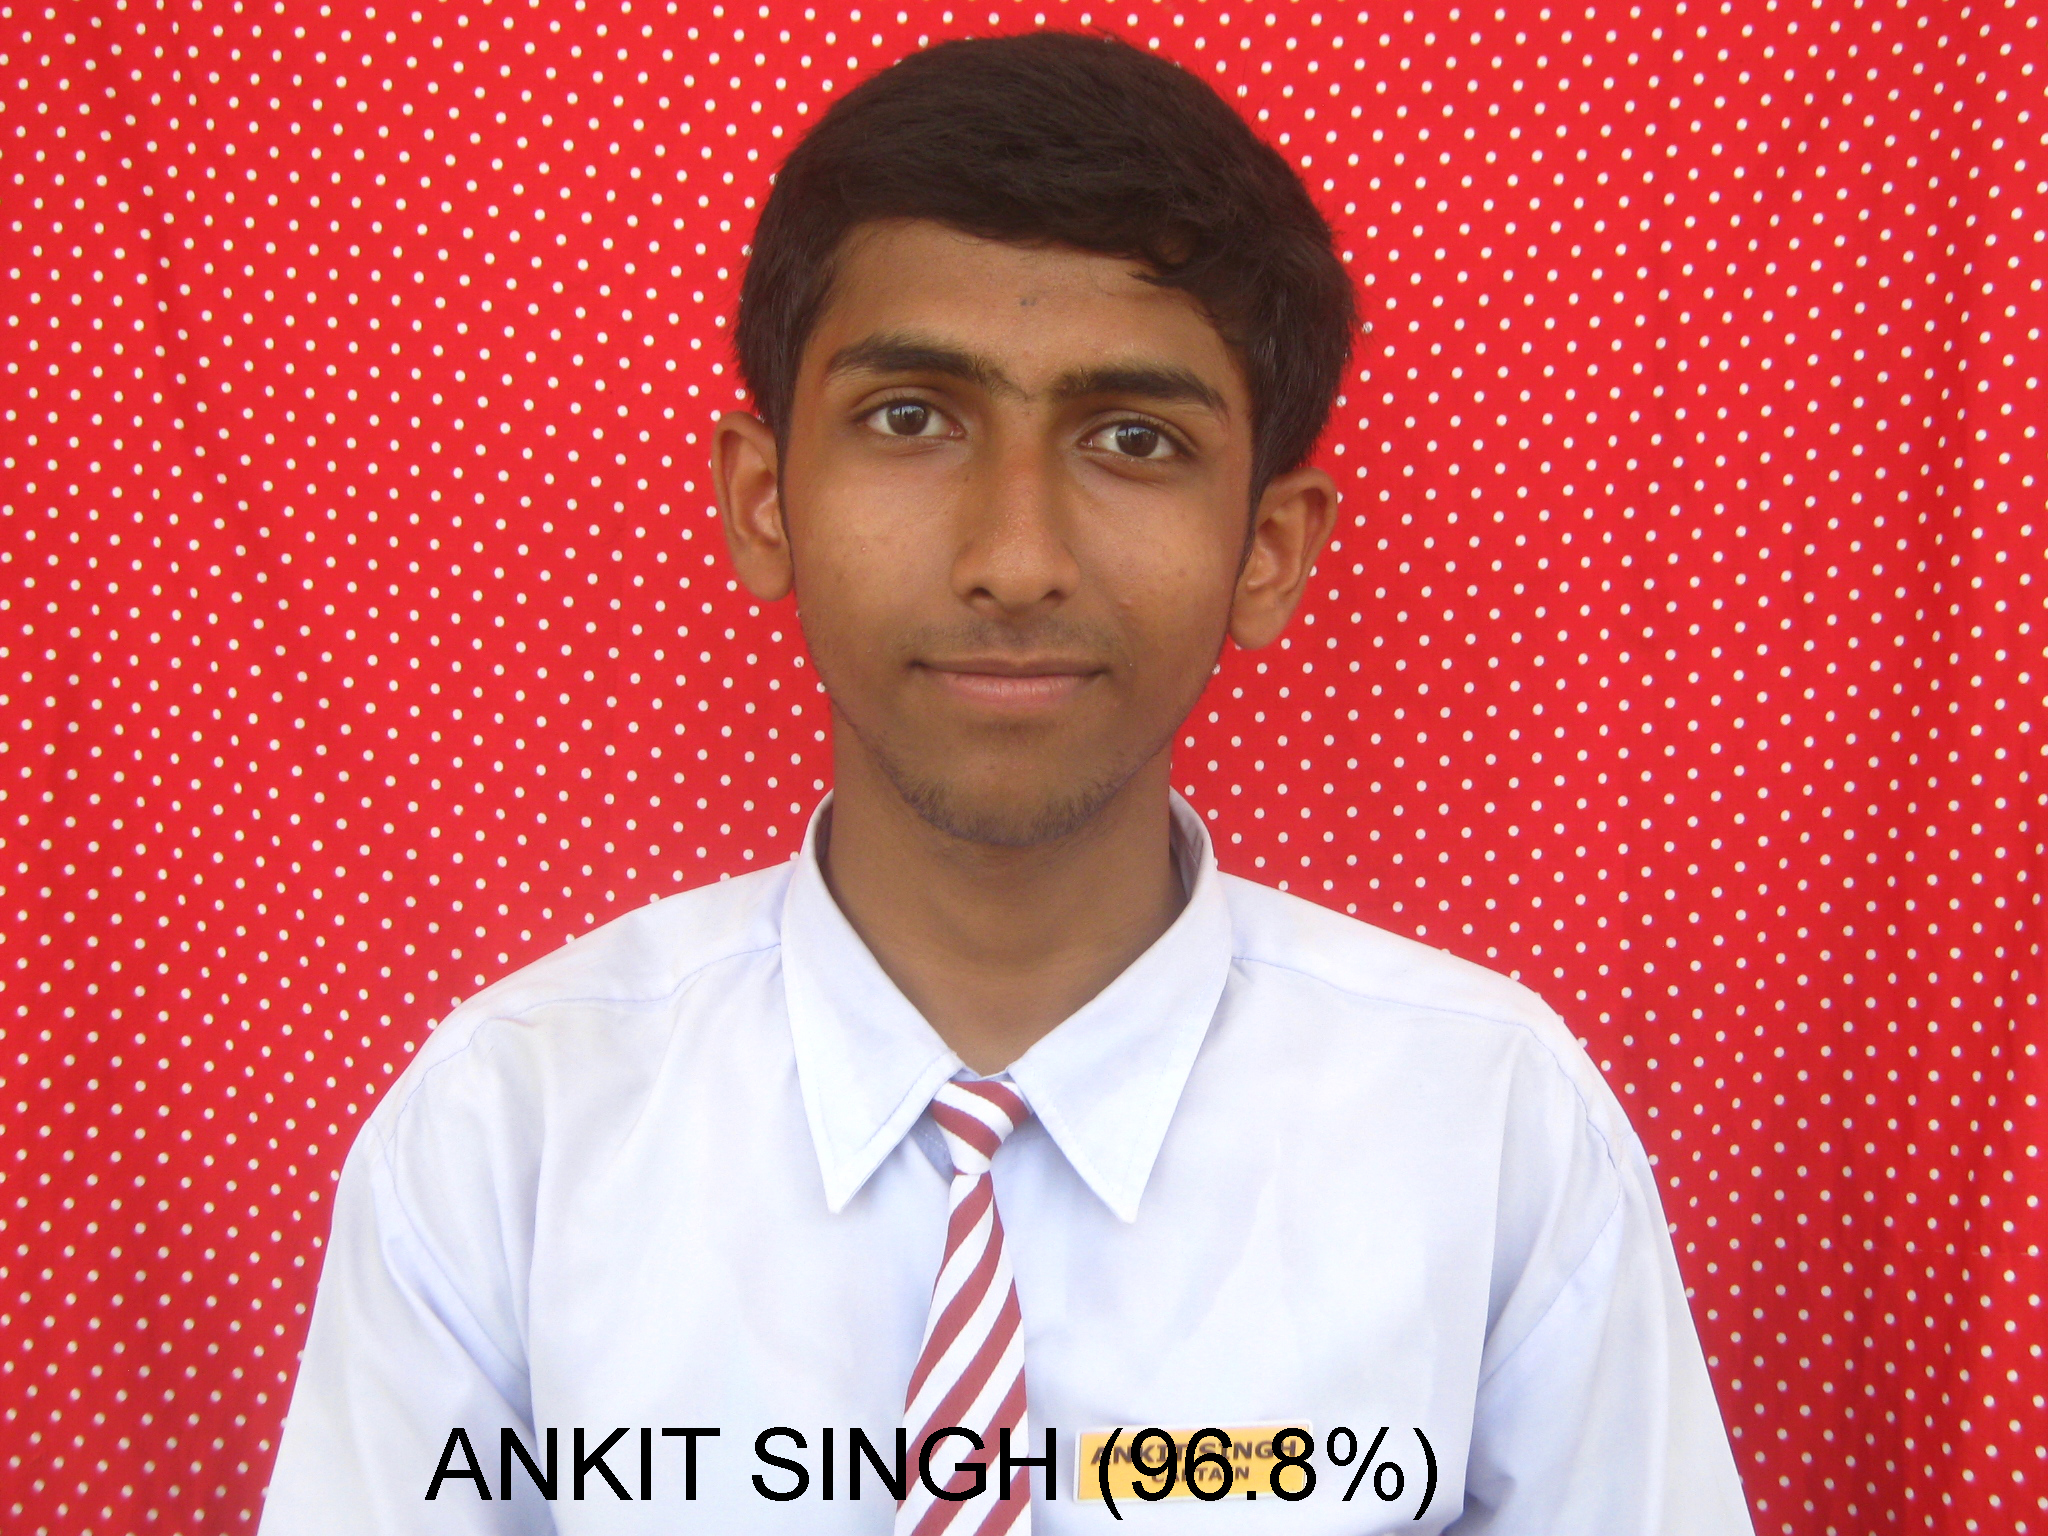 Topper of Khatima Ankit Singh got 96.8% marks in CBSE Result 2019- Class XII at Nosegay,school Achievements,Achievements of Nosegay,school Achievements